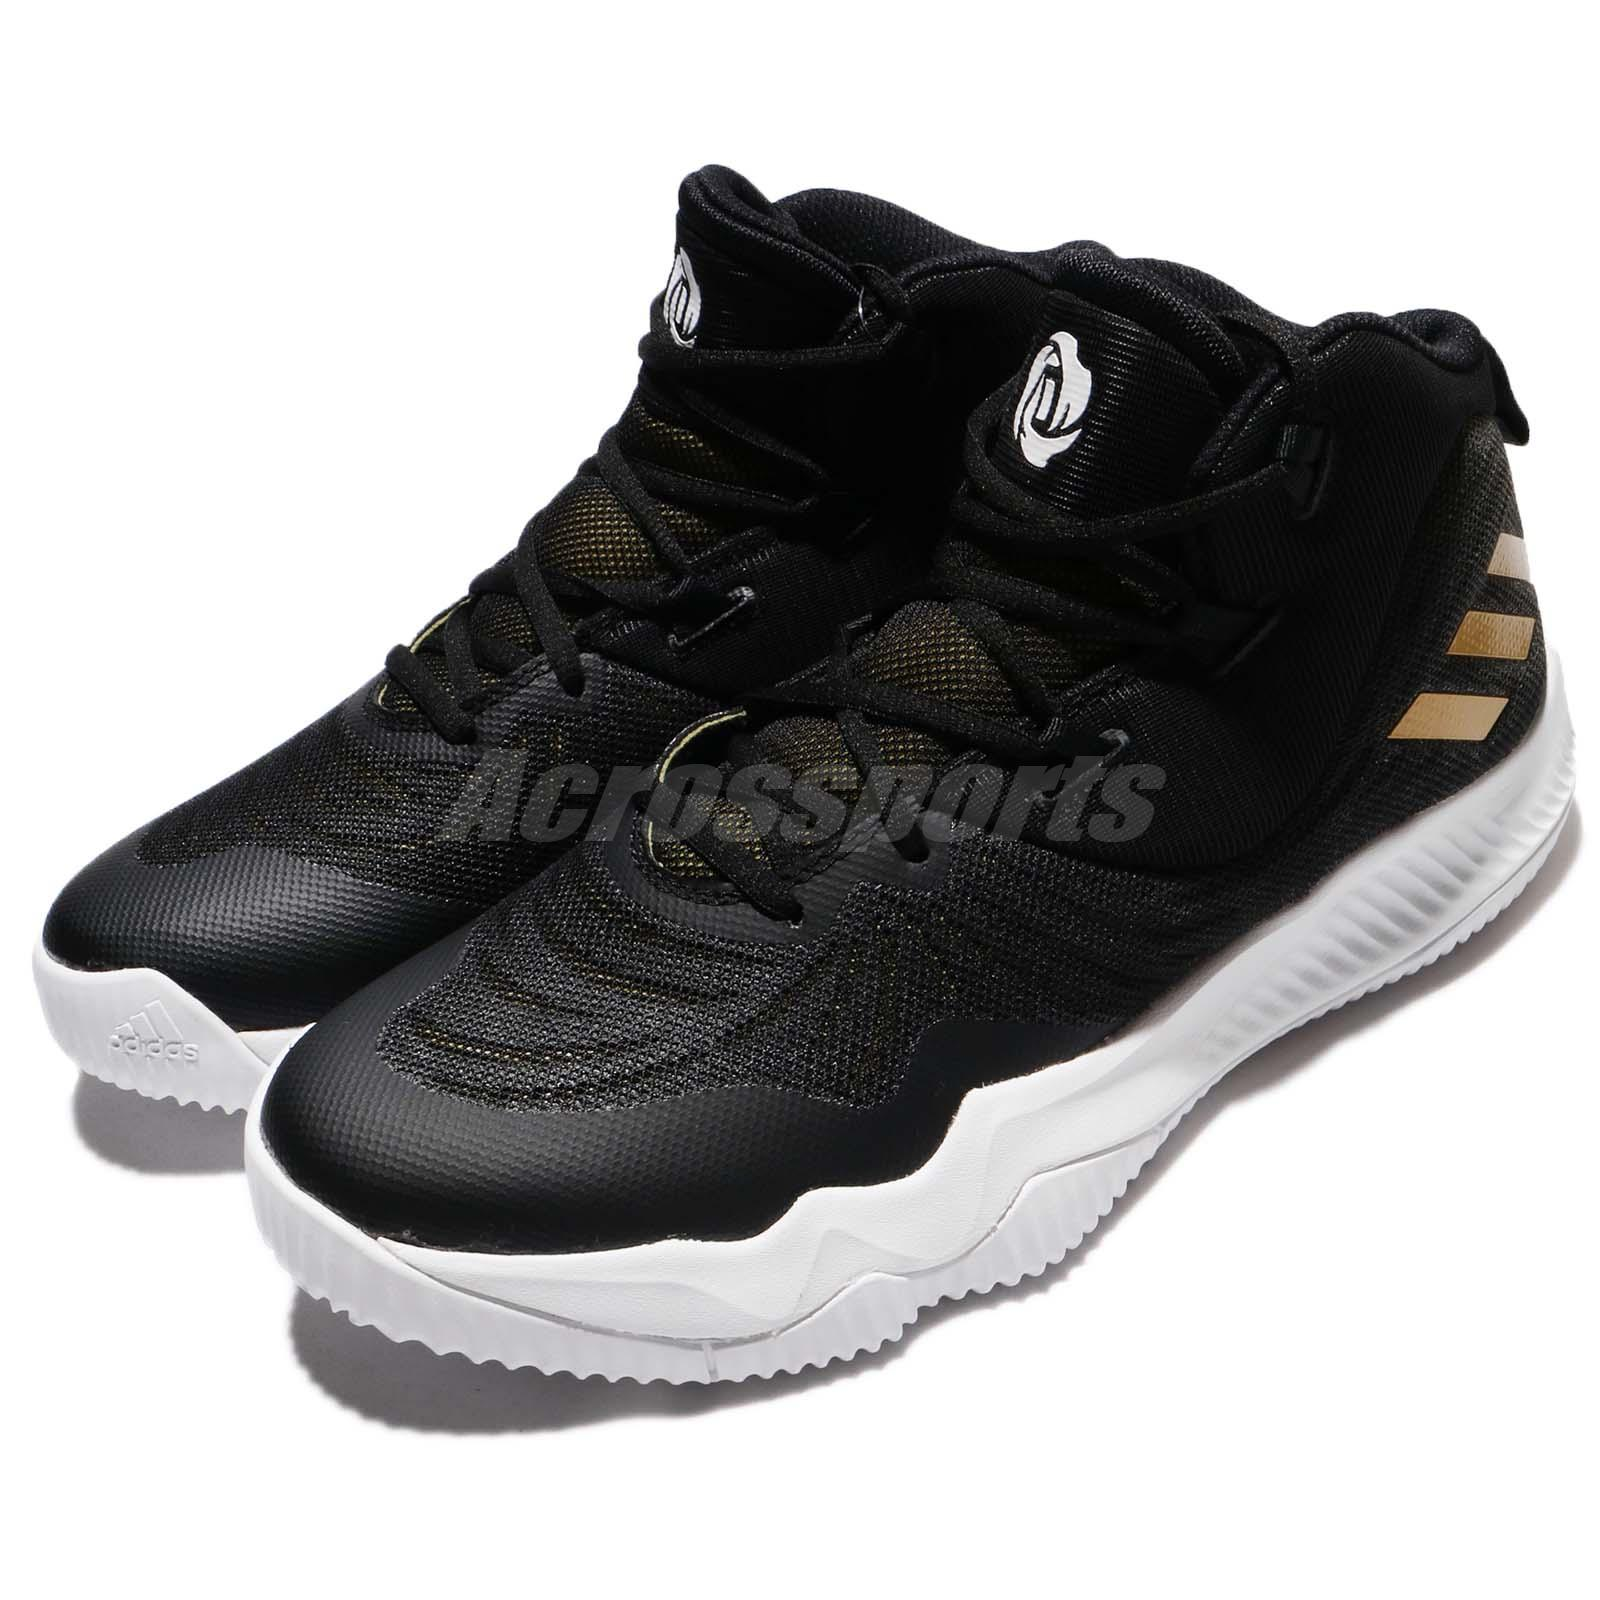 online store b10da c5064 Details about adidas D Rose Dominate III 3 Black Gold White Men Basketball  Shoe Sneaker CQ0727